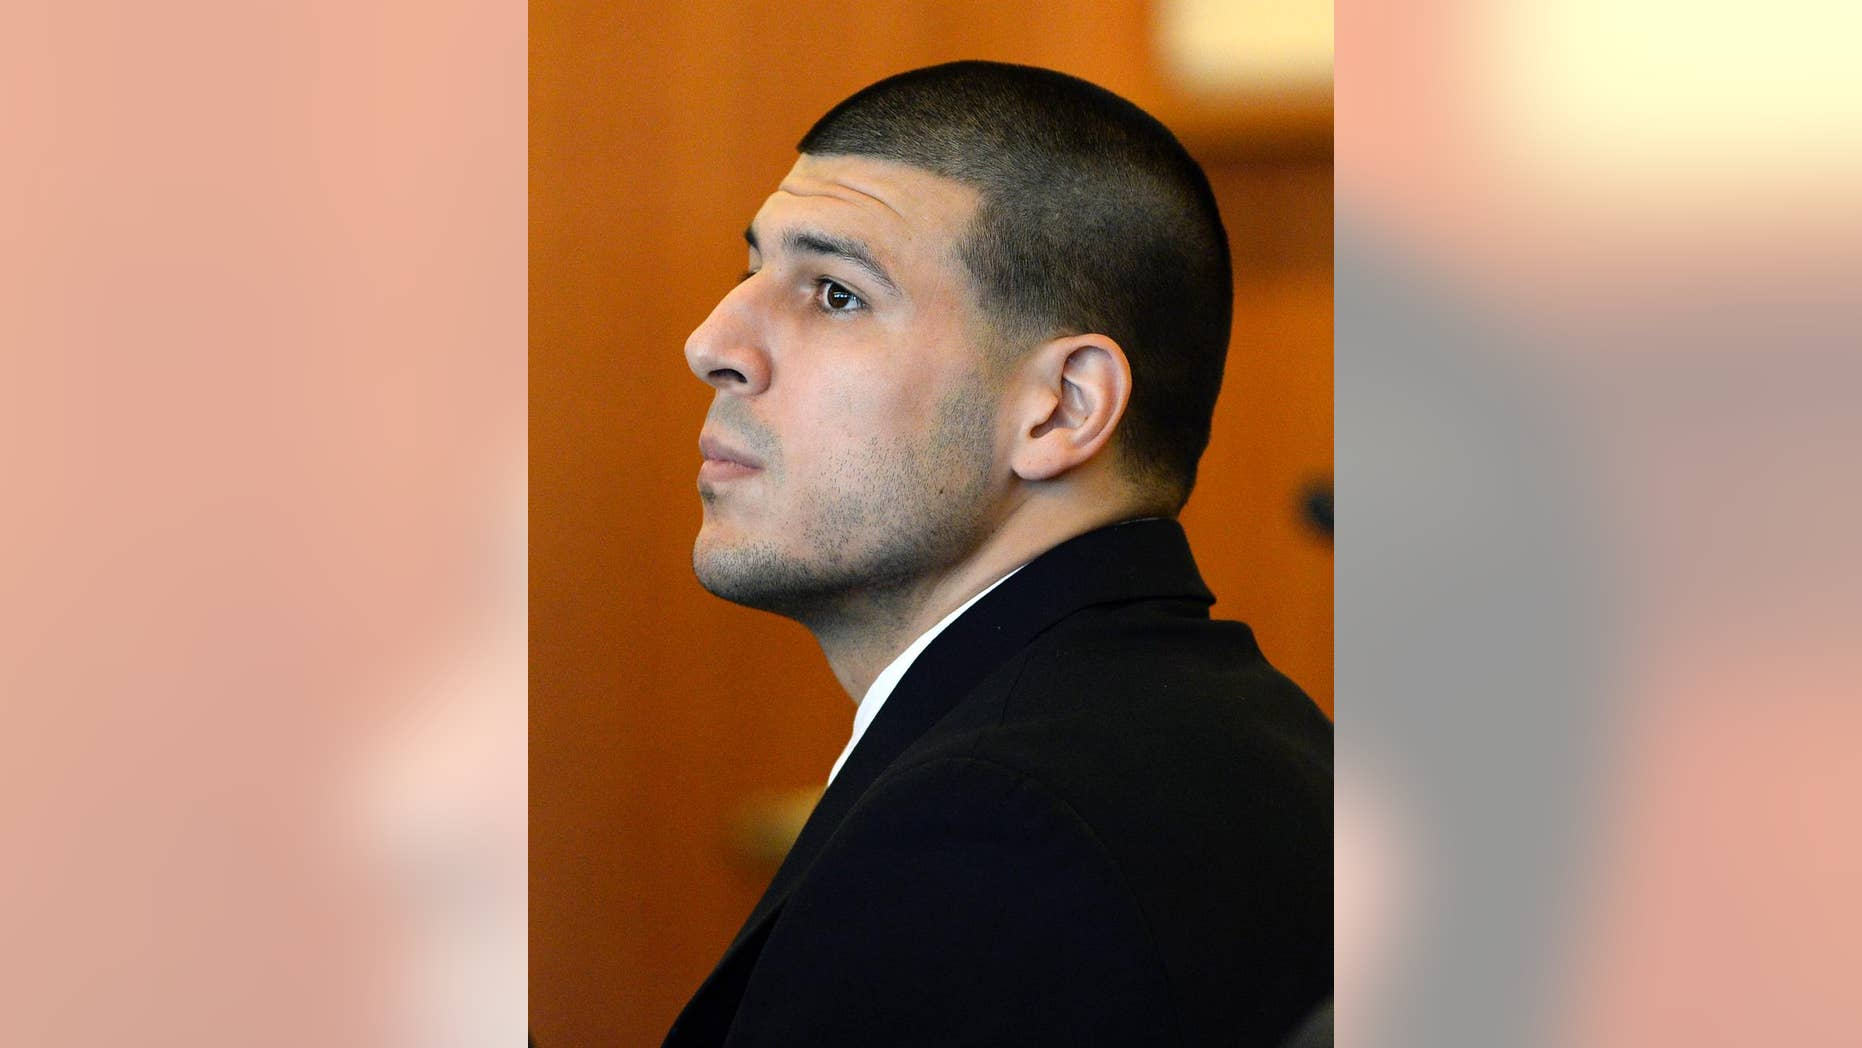 FILE - In this July 22, 2014, file photo, former New England Patriots' Aaron Hernandez watches during a hearing in Bristol County Superior Court in Fall River, Mass. Hernandez is charged with killing Odin Lloyd of Boston, whose body was found in an industrial park near Hernandez's home in North Attleborough in June 2013. During a hearing Monday, Aug. 11, 2014, Judge E. Susan Garsh took under advisement a motion by his defense to suppress evidence from some electronic devices seized from the former NFL football player's home during the investigation. (AP Photo/CJ Gunther, Pool, File)